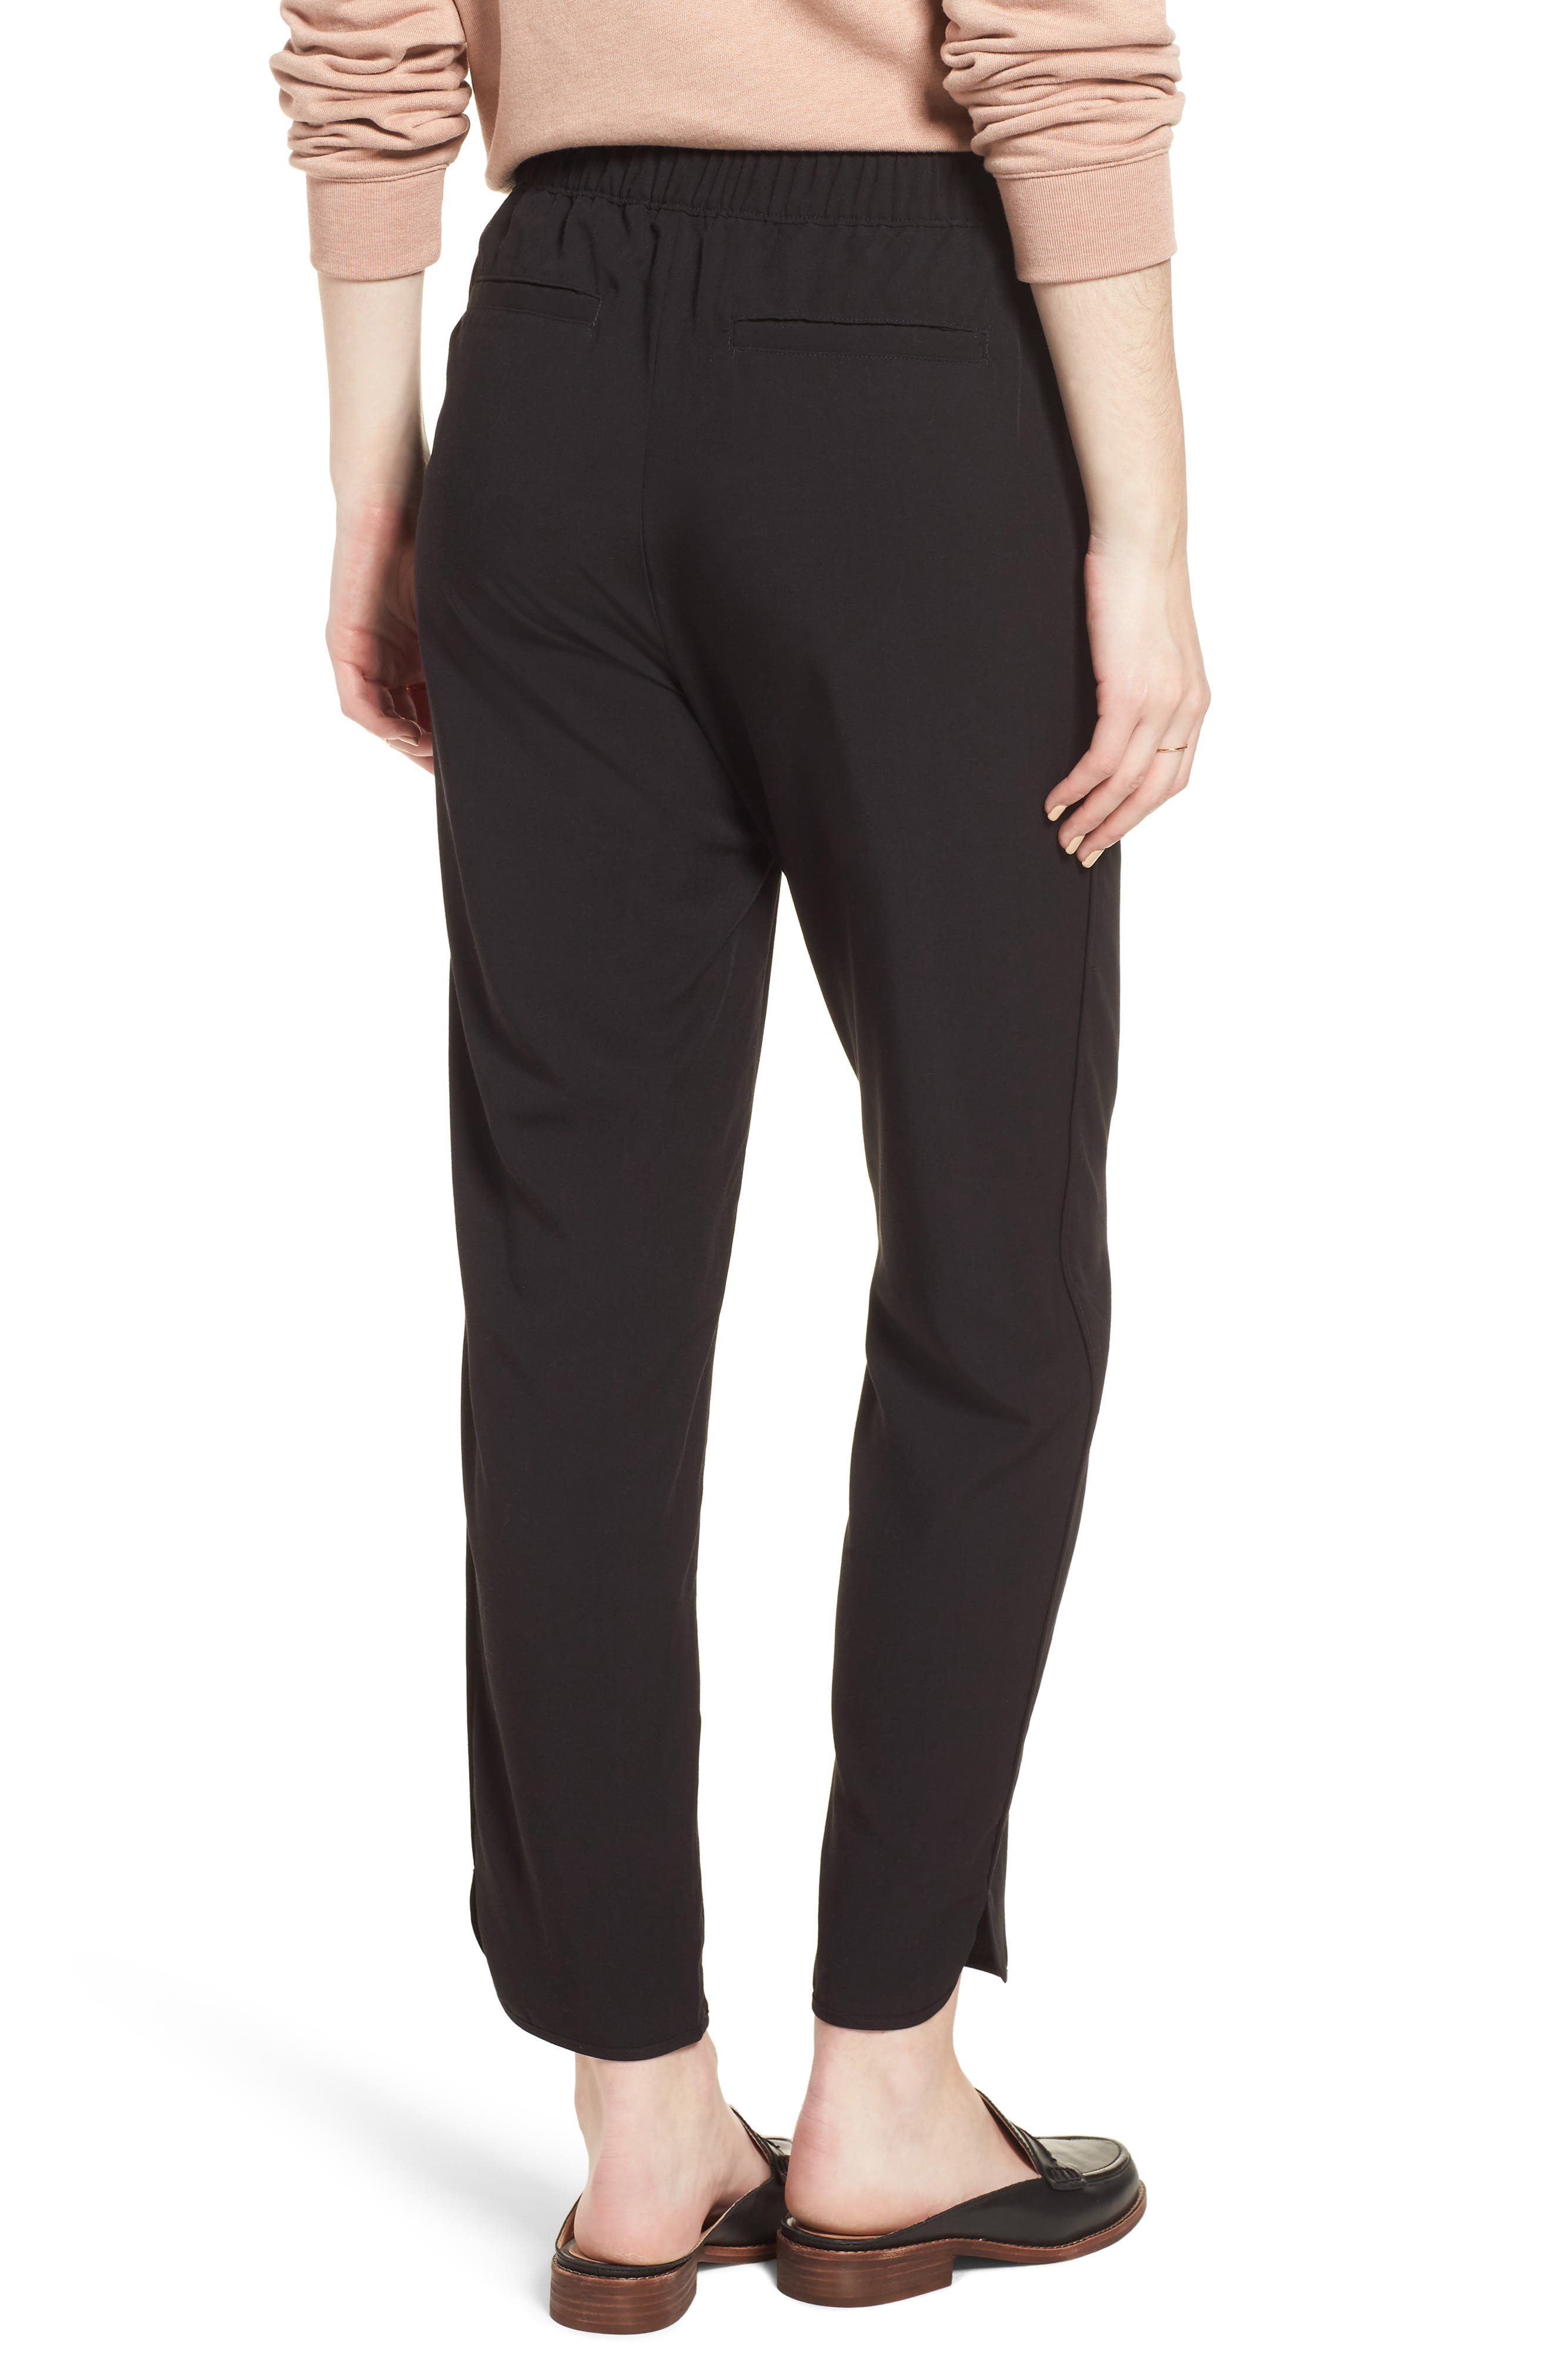 MADEWELL,                             Drawstring Track Trousers,                             Alternate thumbnail 2, color,                             001